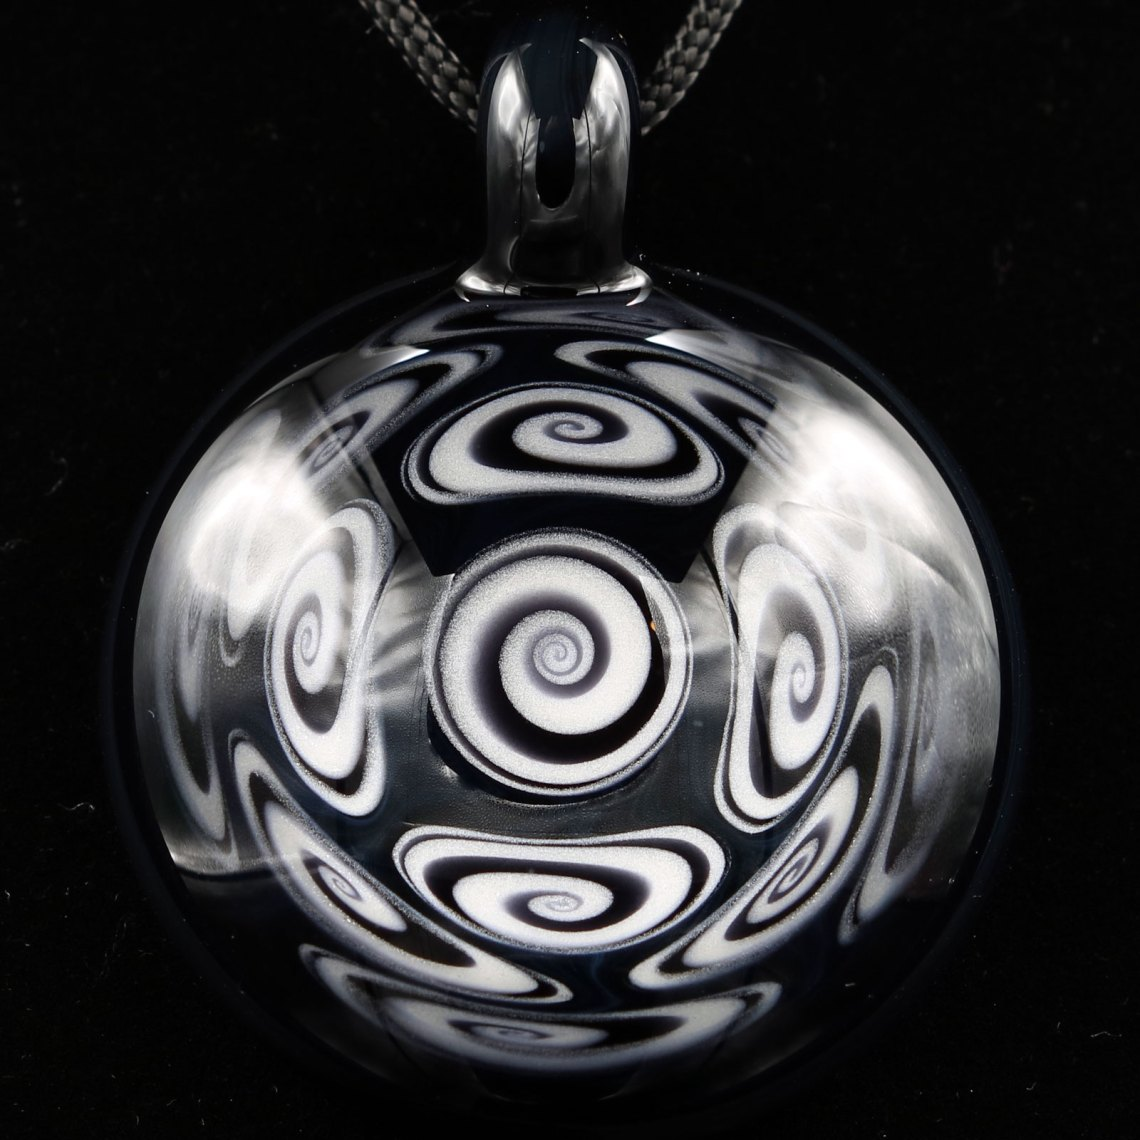 Kaja Glass – 13 Section Black and White Microspiral Glass Pendant